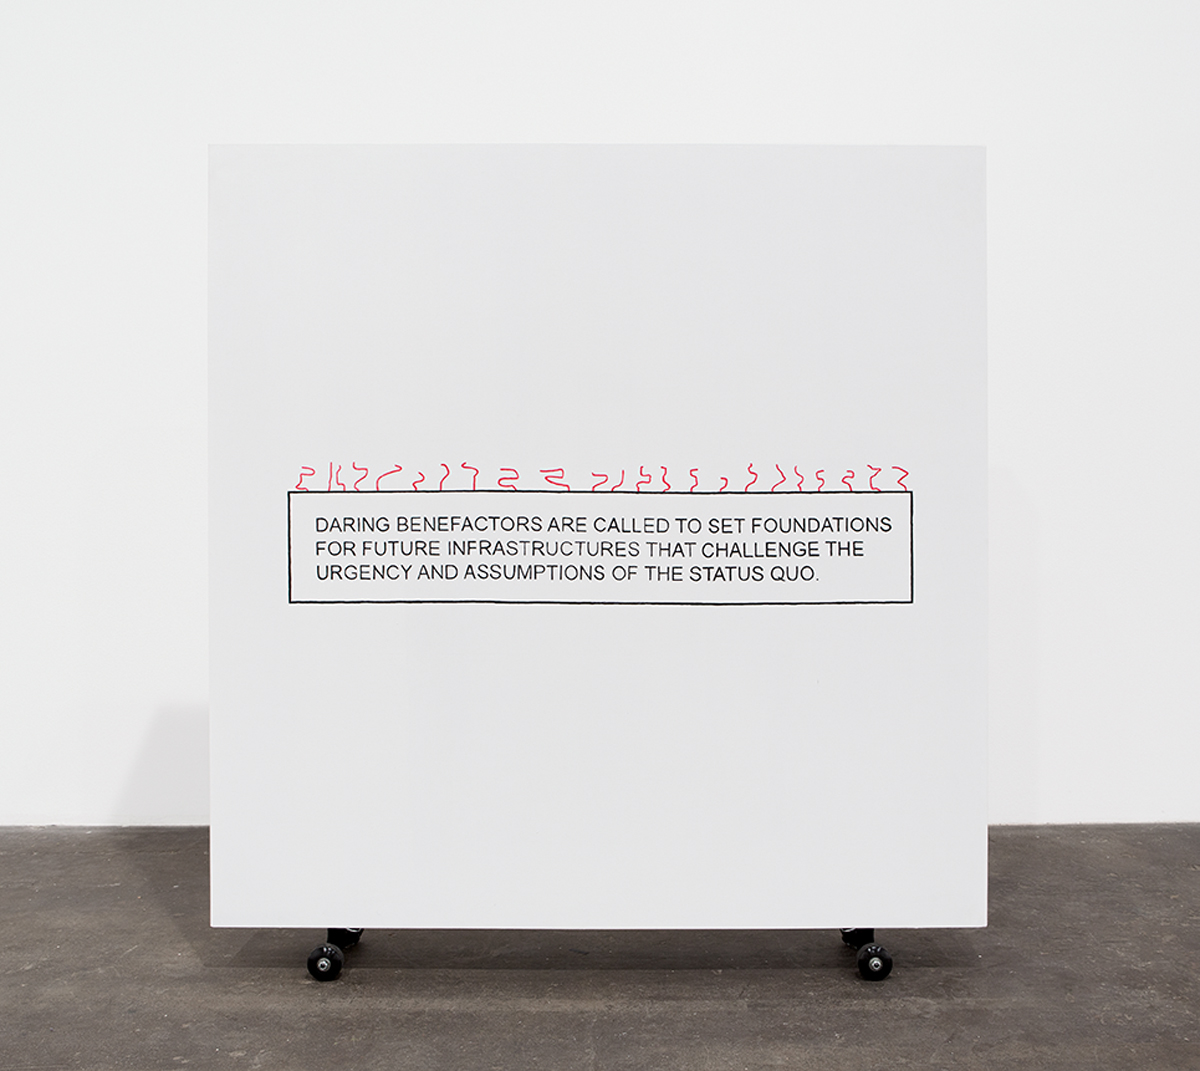 Side B: Daring Benefactors, 2014. Plywood, pine, printed text, flashe, wheels. 51 x 48 x 6 inches.